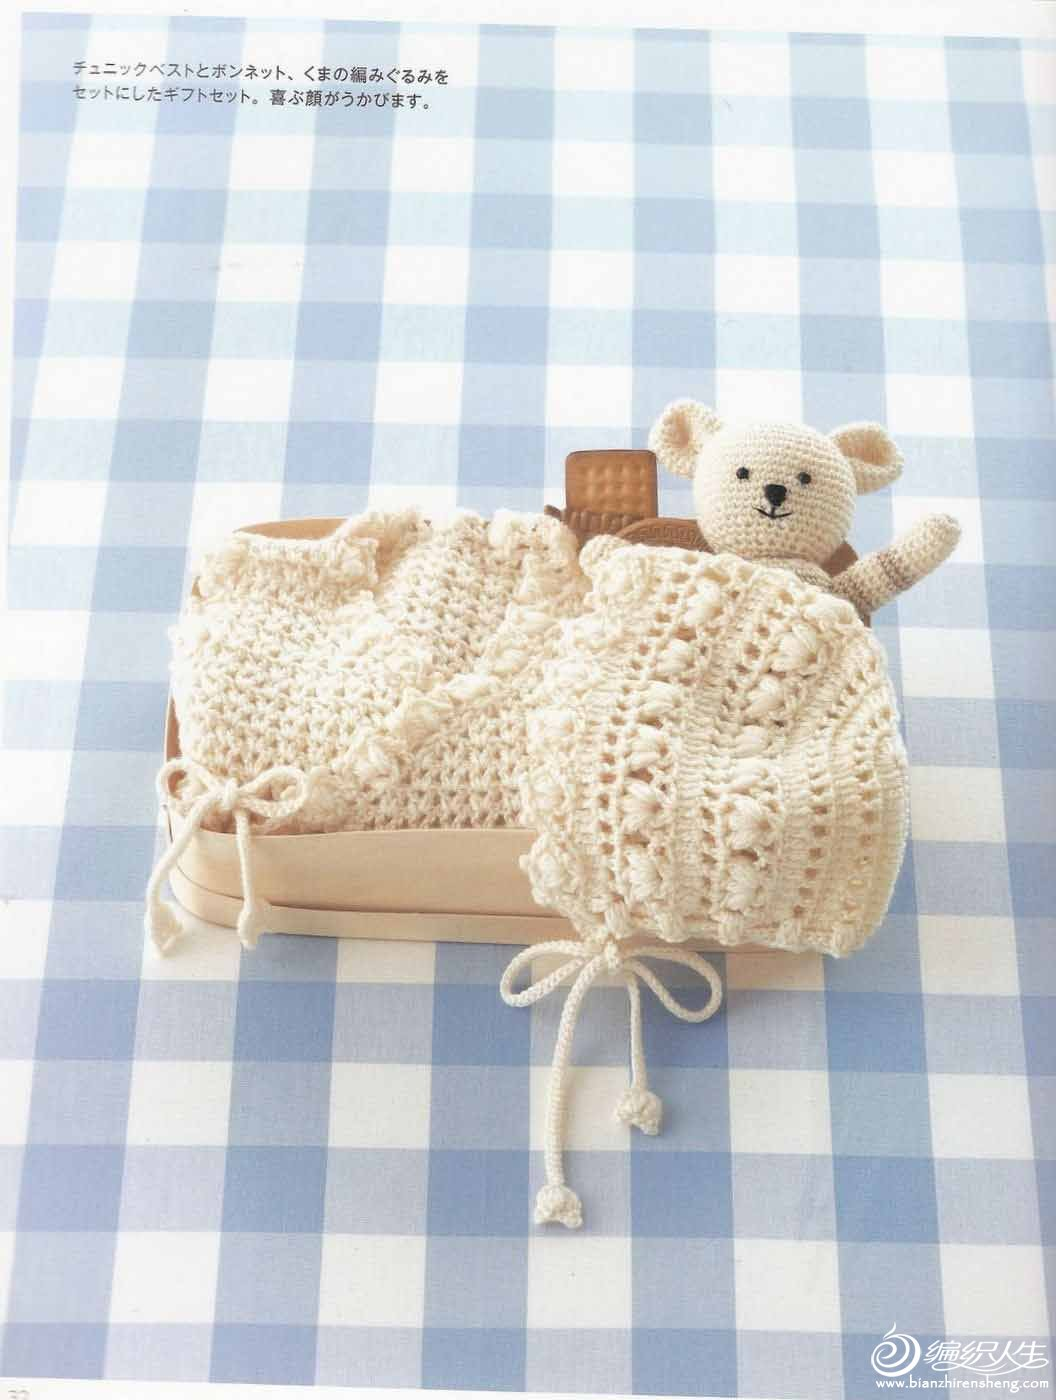 Happy crochet time for my baby_页面_34.jpg